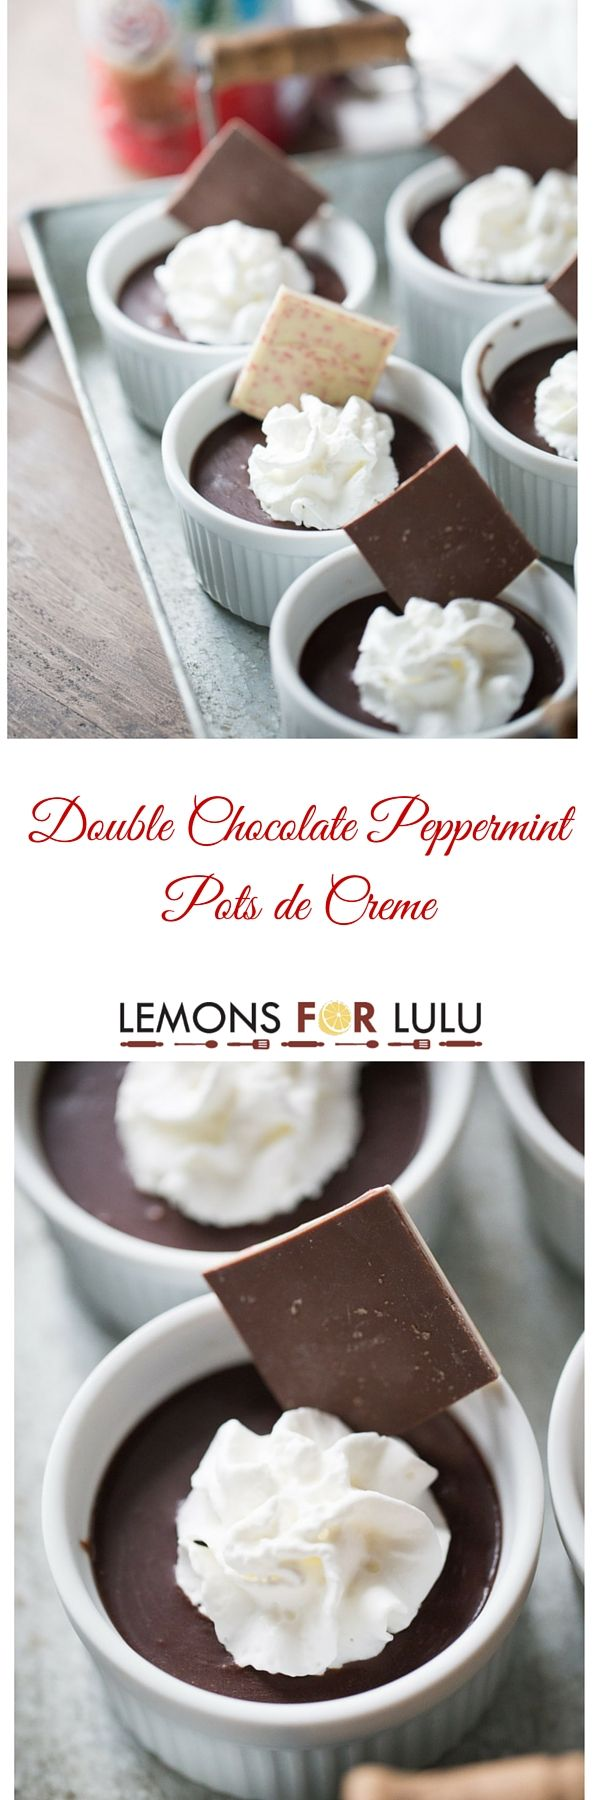 White chocolate is the base for these peppermint flavored pots de creme recipe! Each custard is topped with a decadent peppermint chocolate ganache sauce for a festive and fun holiday dessert! lemonsforlulu.com  ShareYourDelight